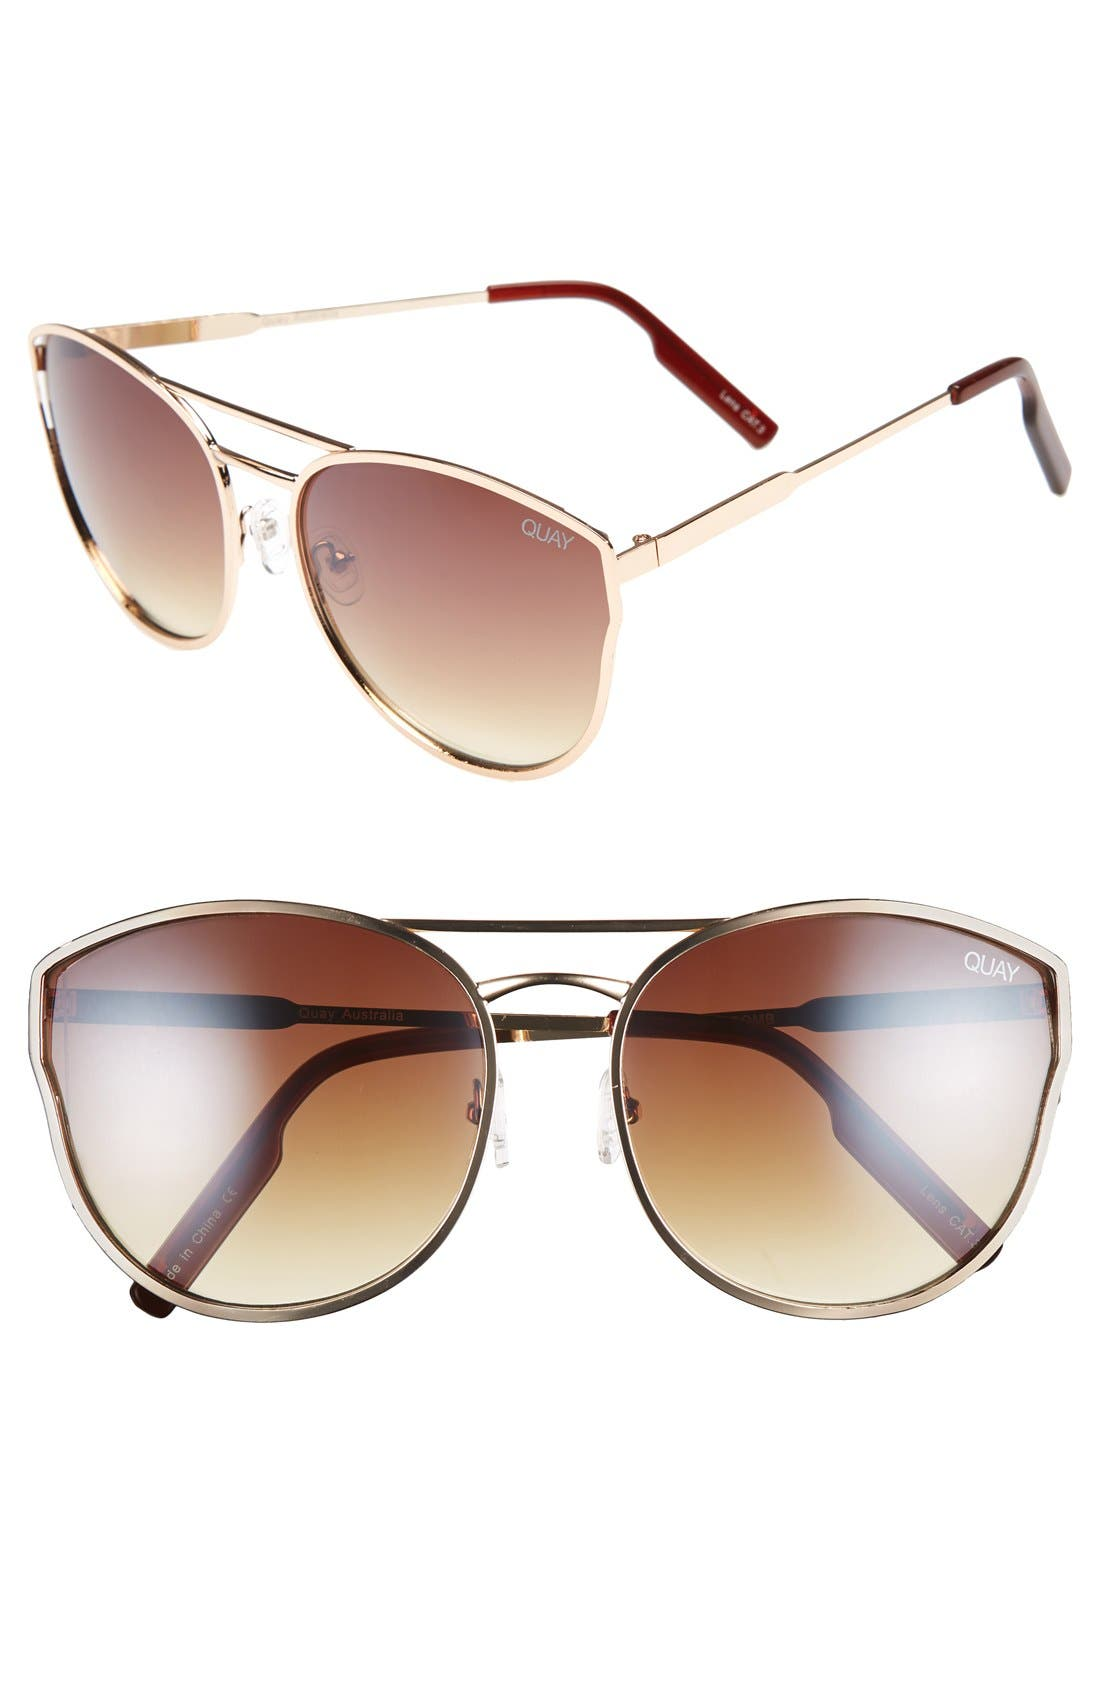 Cherry Bomb 60mm Sunglasses,                             Main thumbnail 1, color,                             Gold/ Silver Mirror